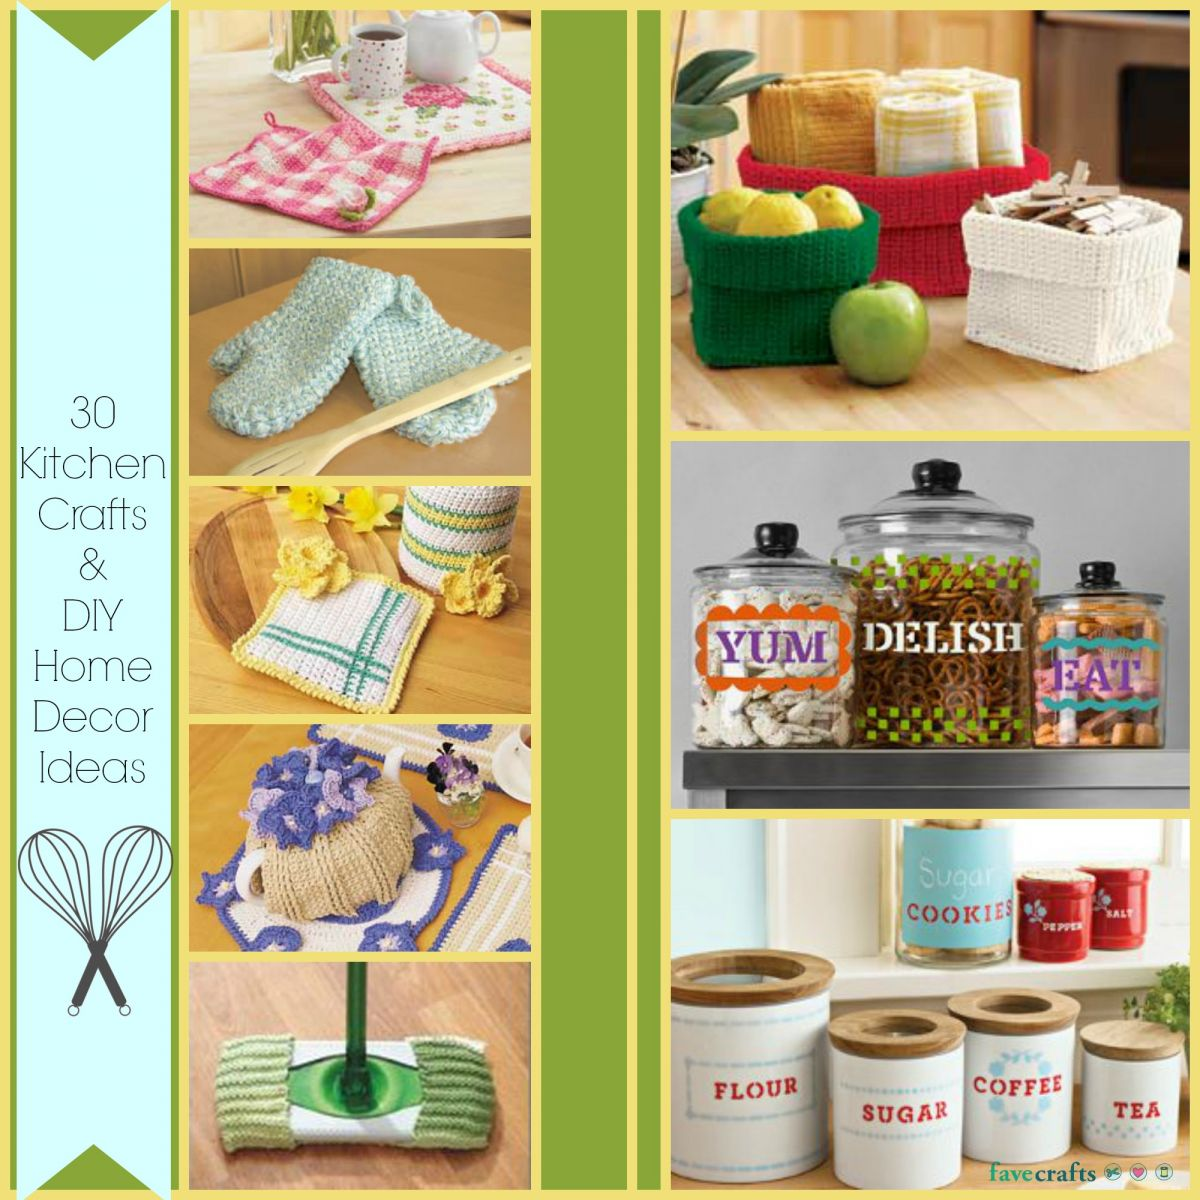 30 Kitchen Crafts and DIY Home Decor Ideas  sc 1 st  FaveCrafts & 30 Kitchen Crafts and DIY Home Decor Ideas | FaveCrafts.com